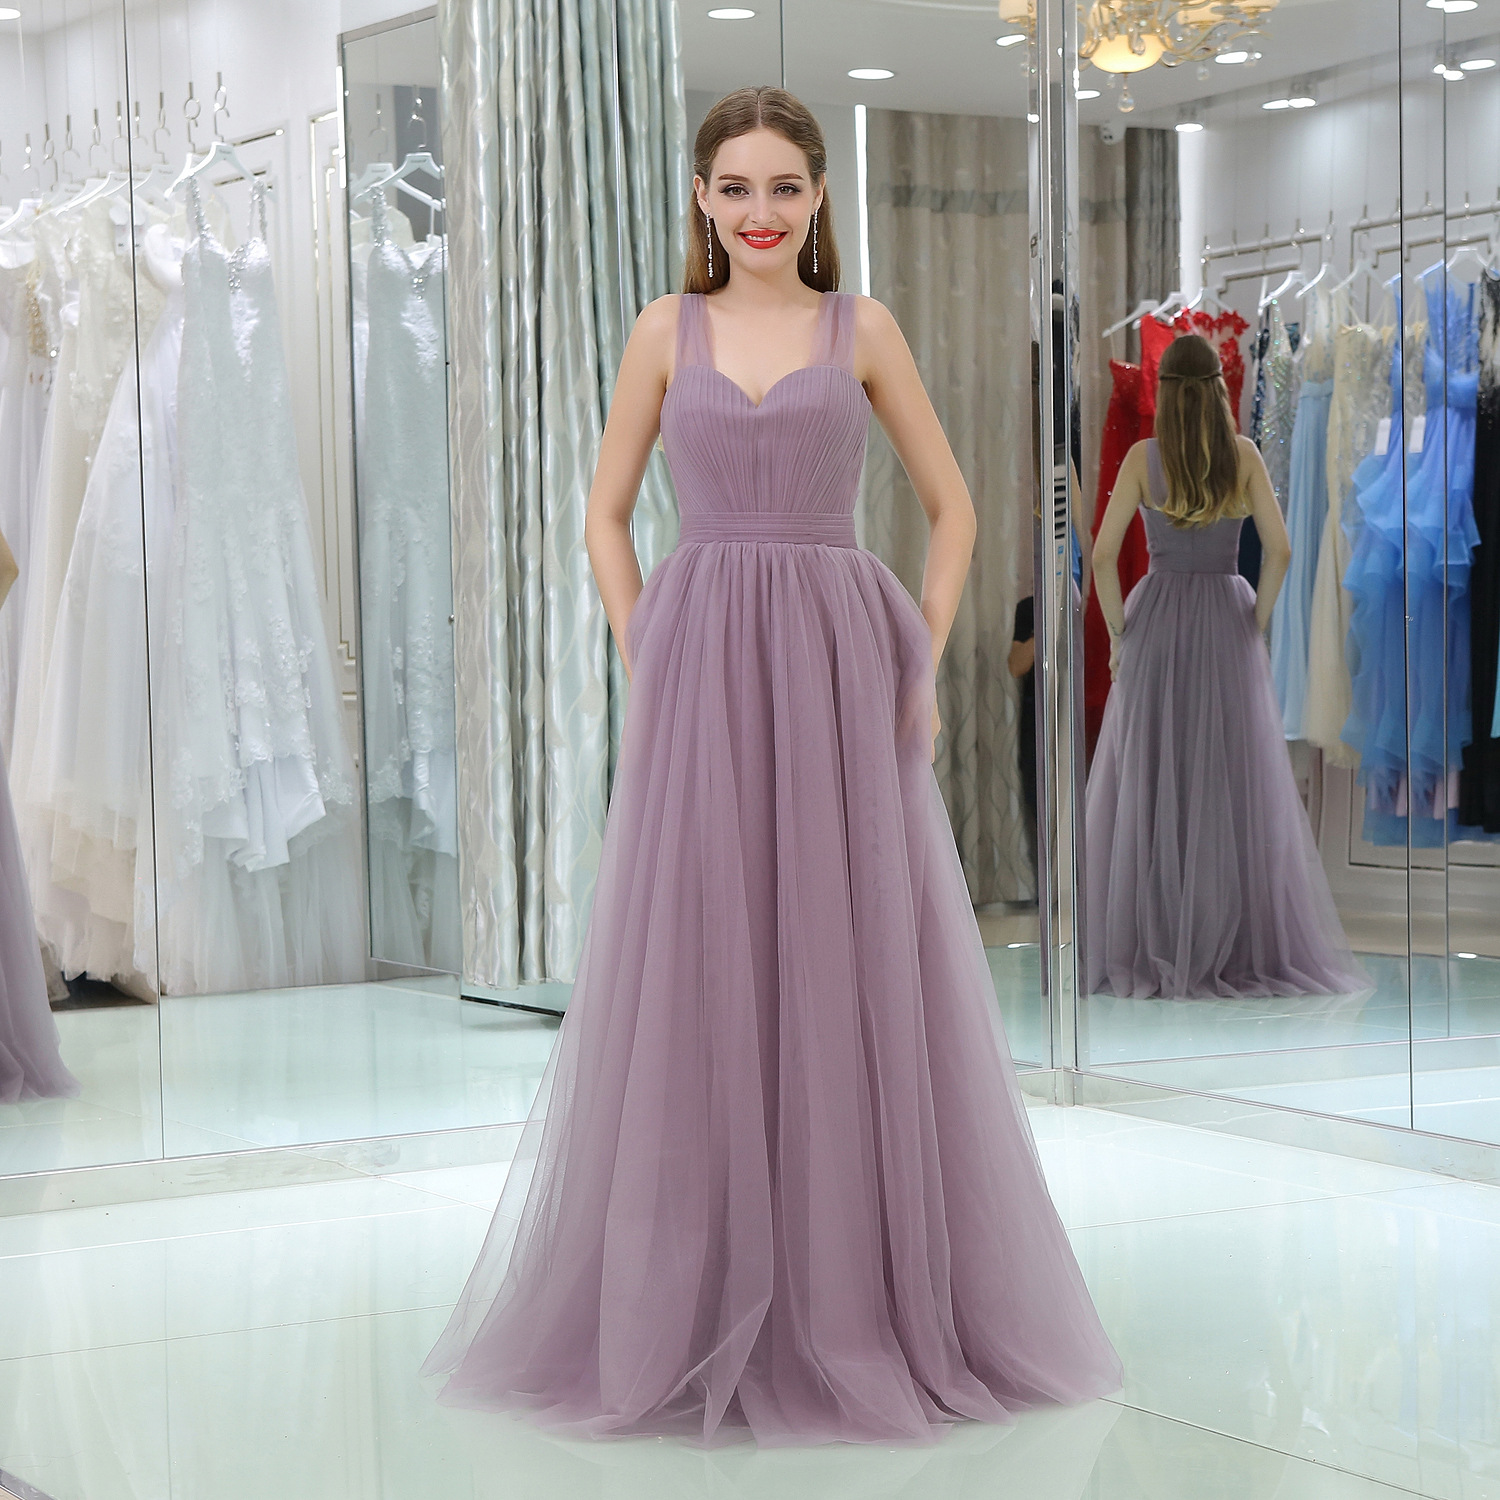 Sexy V-neck Backless A Line Evening Dressses Long Mother Of The Bride Dresses Formal Dress Women Elegant Gala Gowns Custom Dress